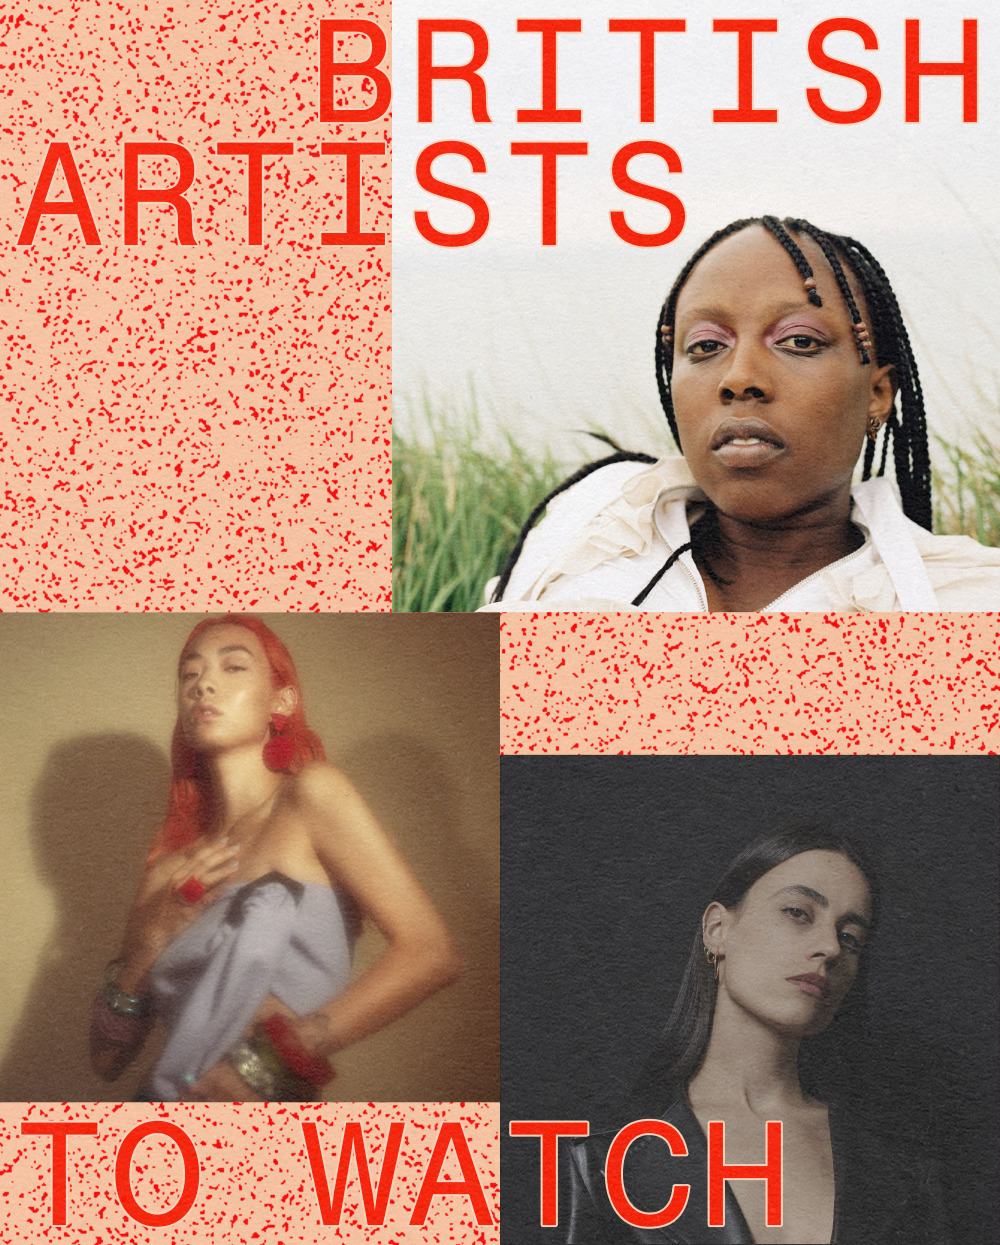 15 U.K. artists you need to listen to in 2018